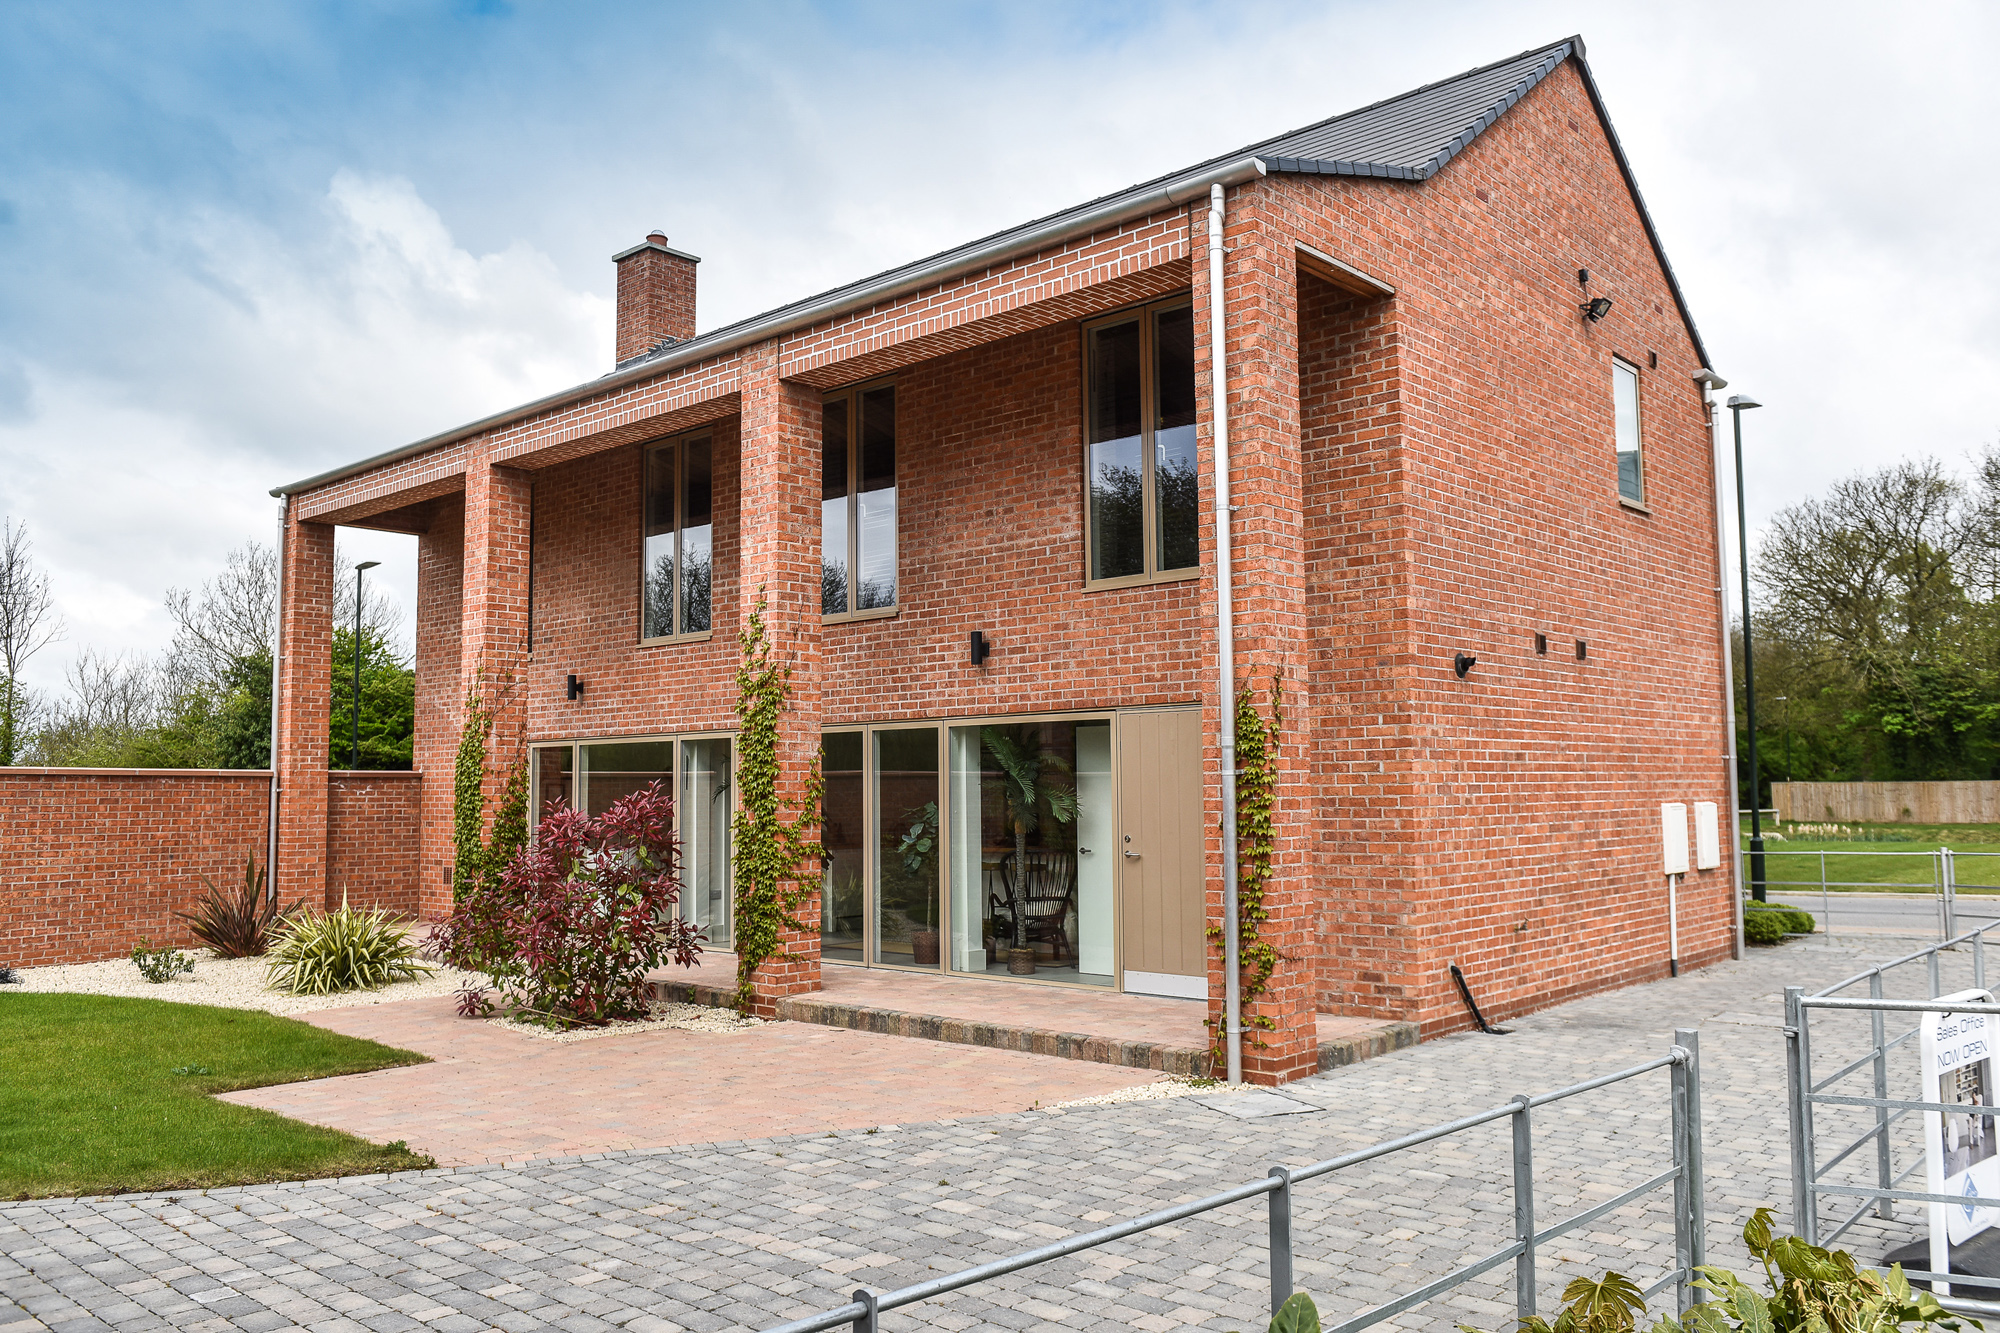 An aluminium rainwater system for a contemporary village development